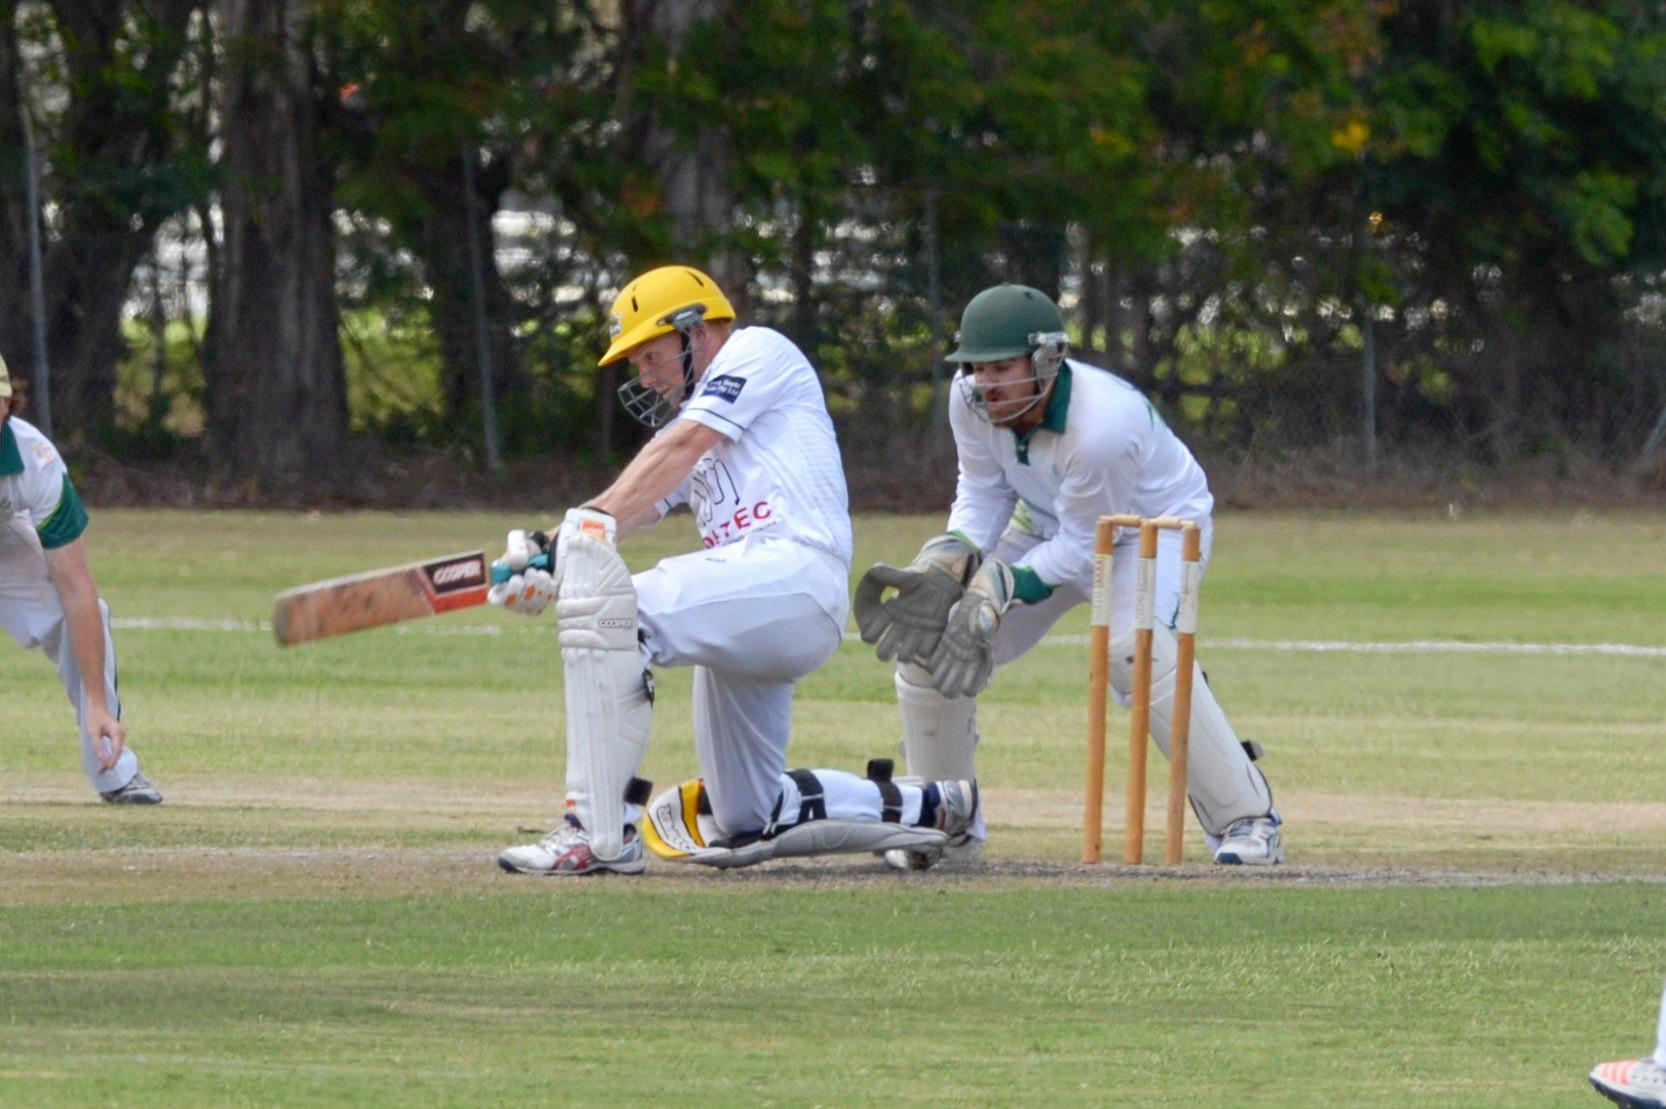 CRICKET CAPRICORN CHALLENGE: Gracemere's Todd Harmsworth at bat and Frenchville keeper Lachlan Hartley